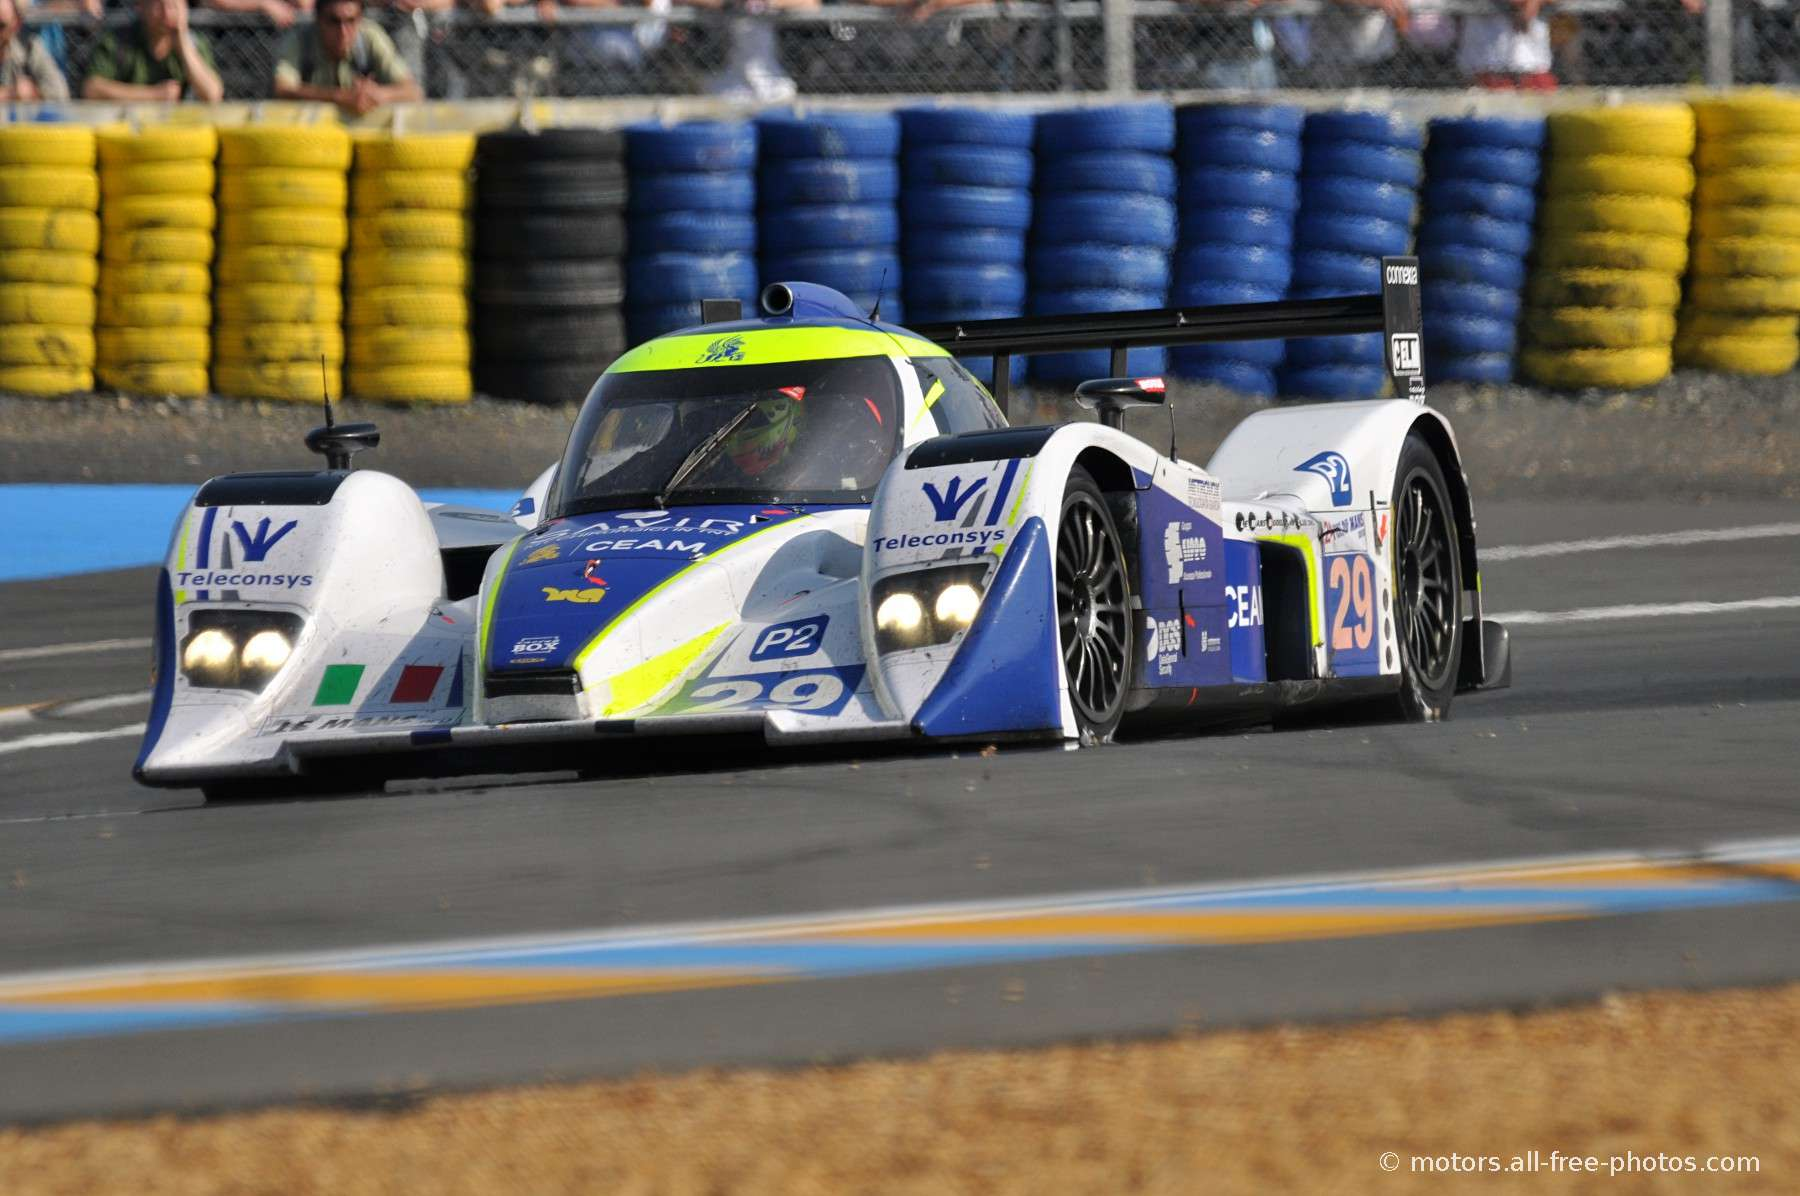 Lola B08/80 Judd - Team Racing Box SRL